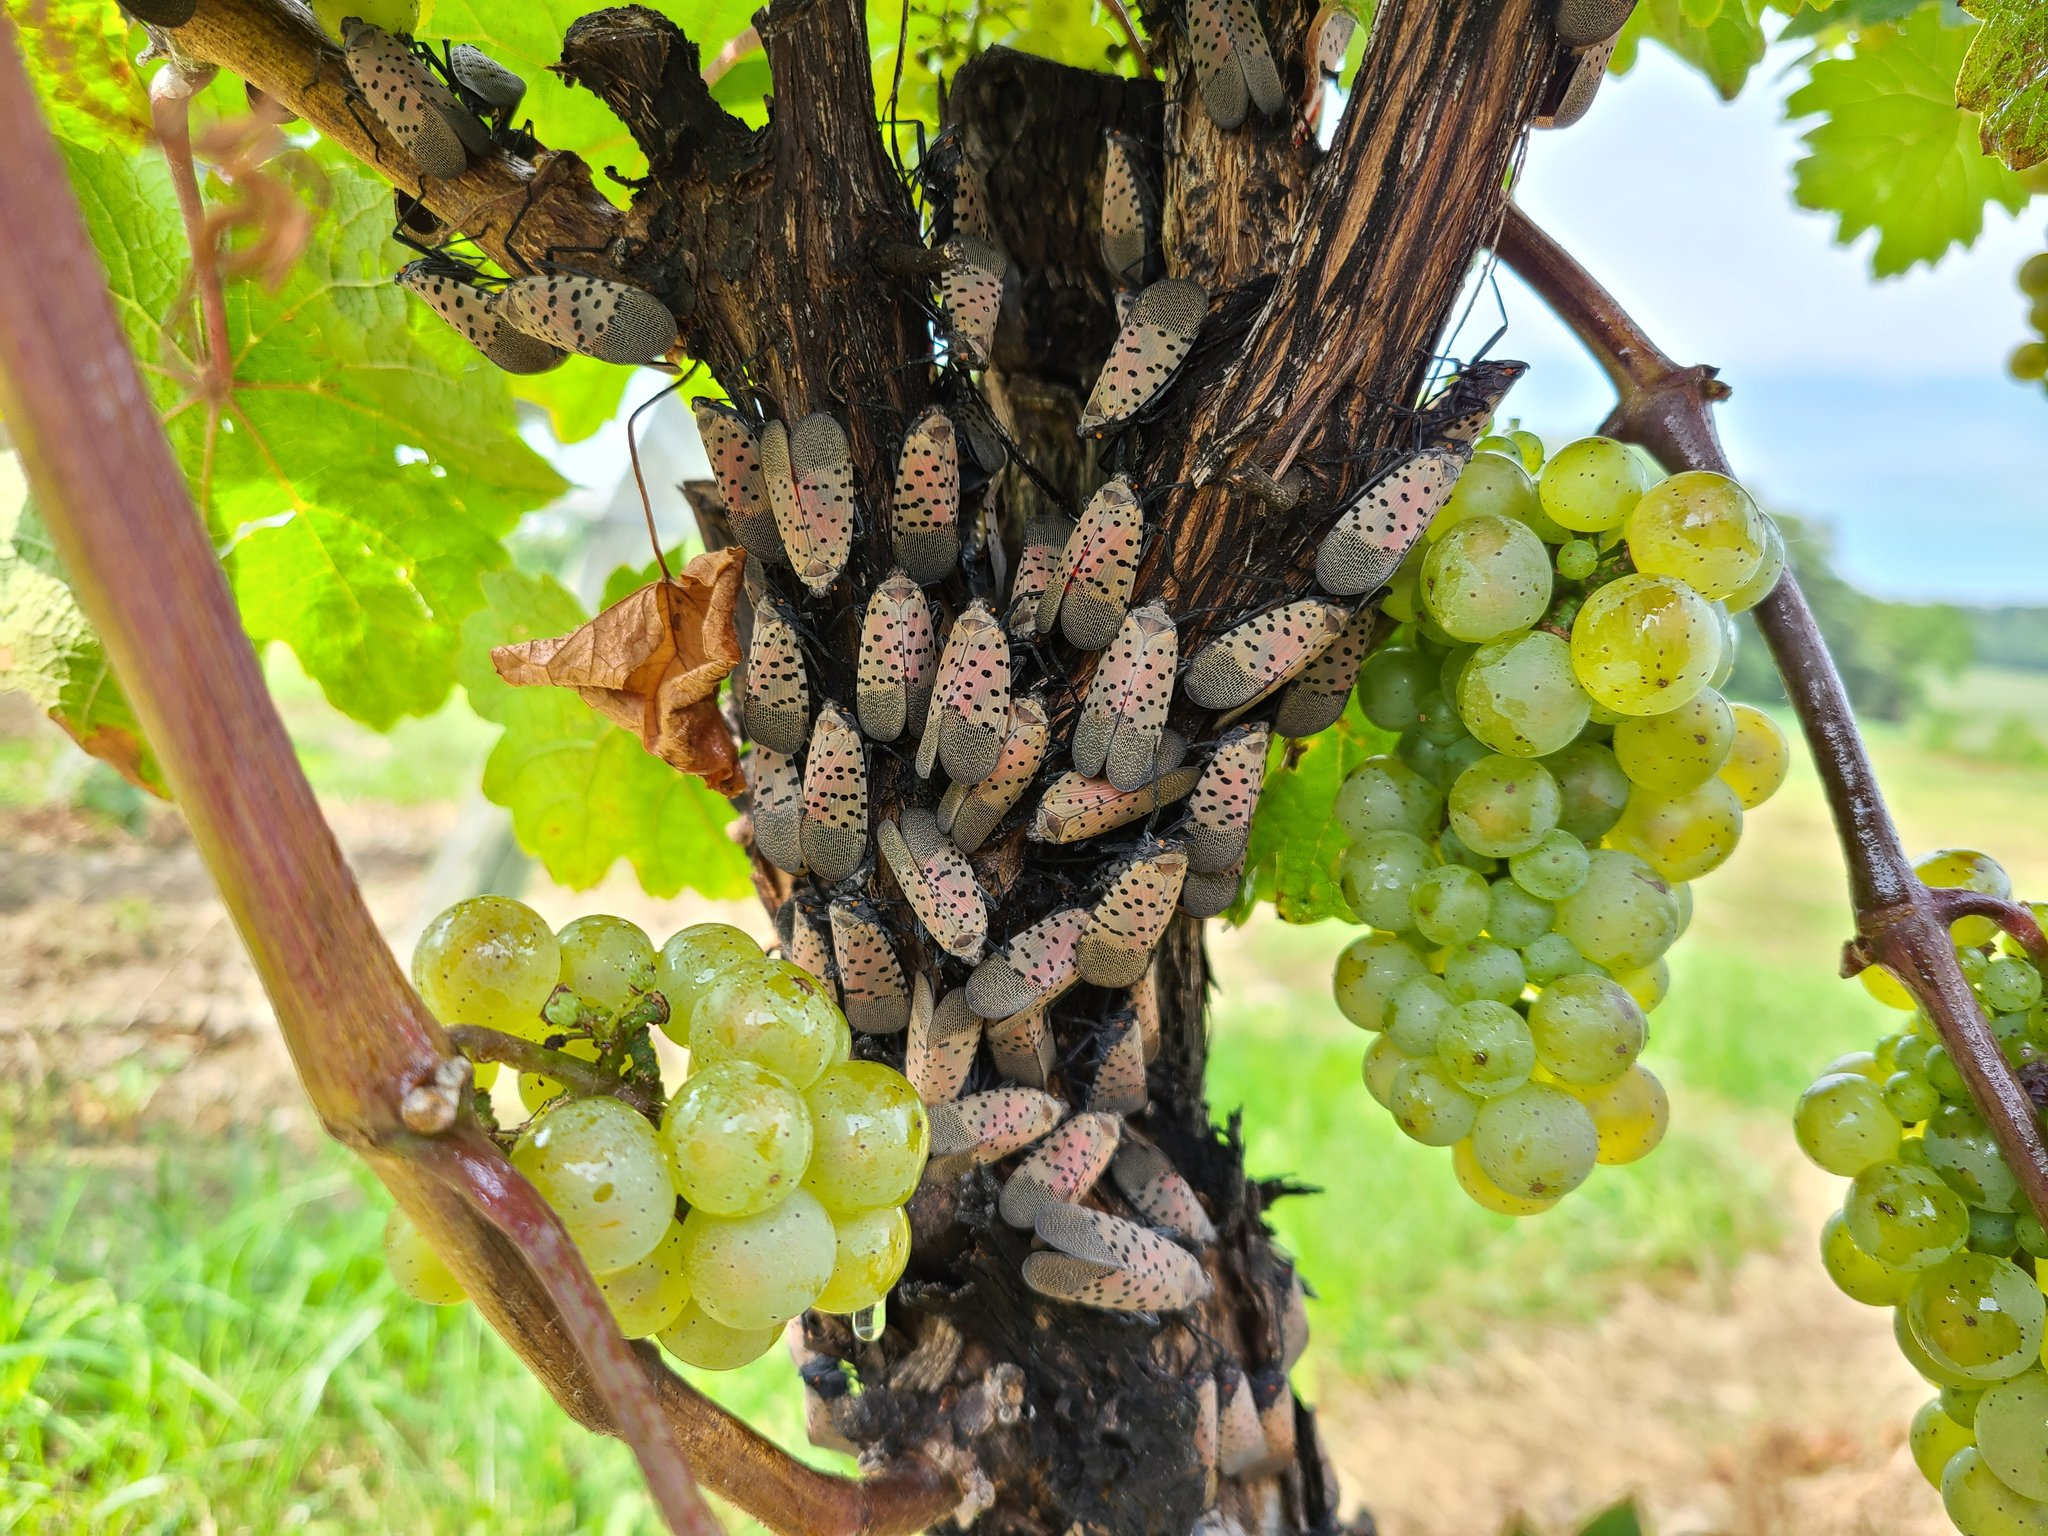 Grapvines infested with Spotted Lanternfly (Heather Leach)